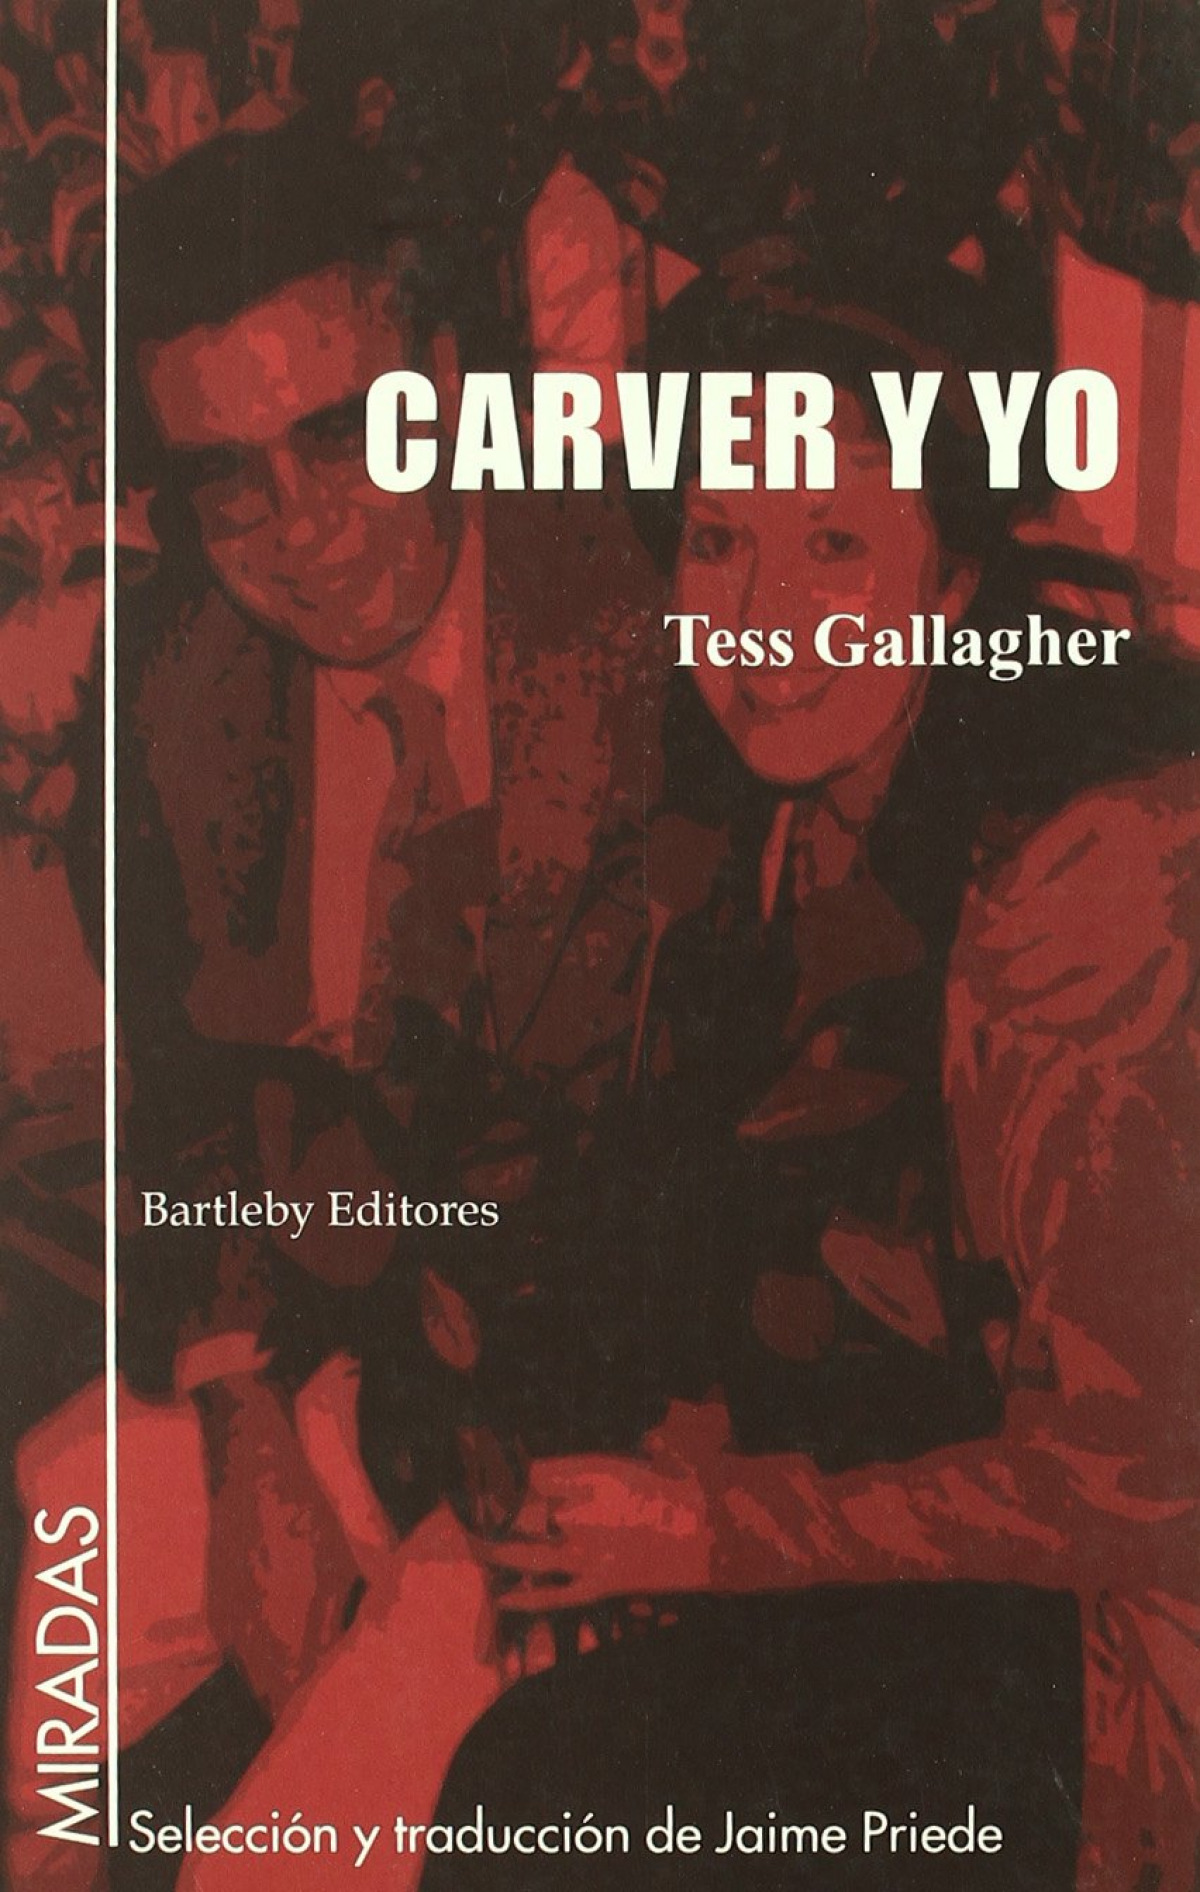 Carver y yo - Gallagher, Tess